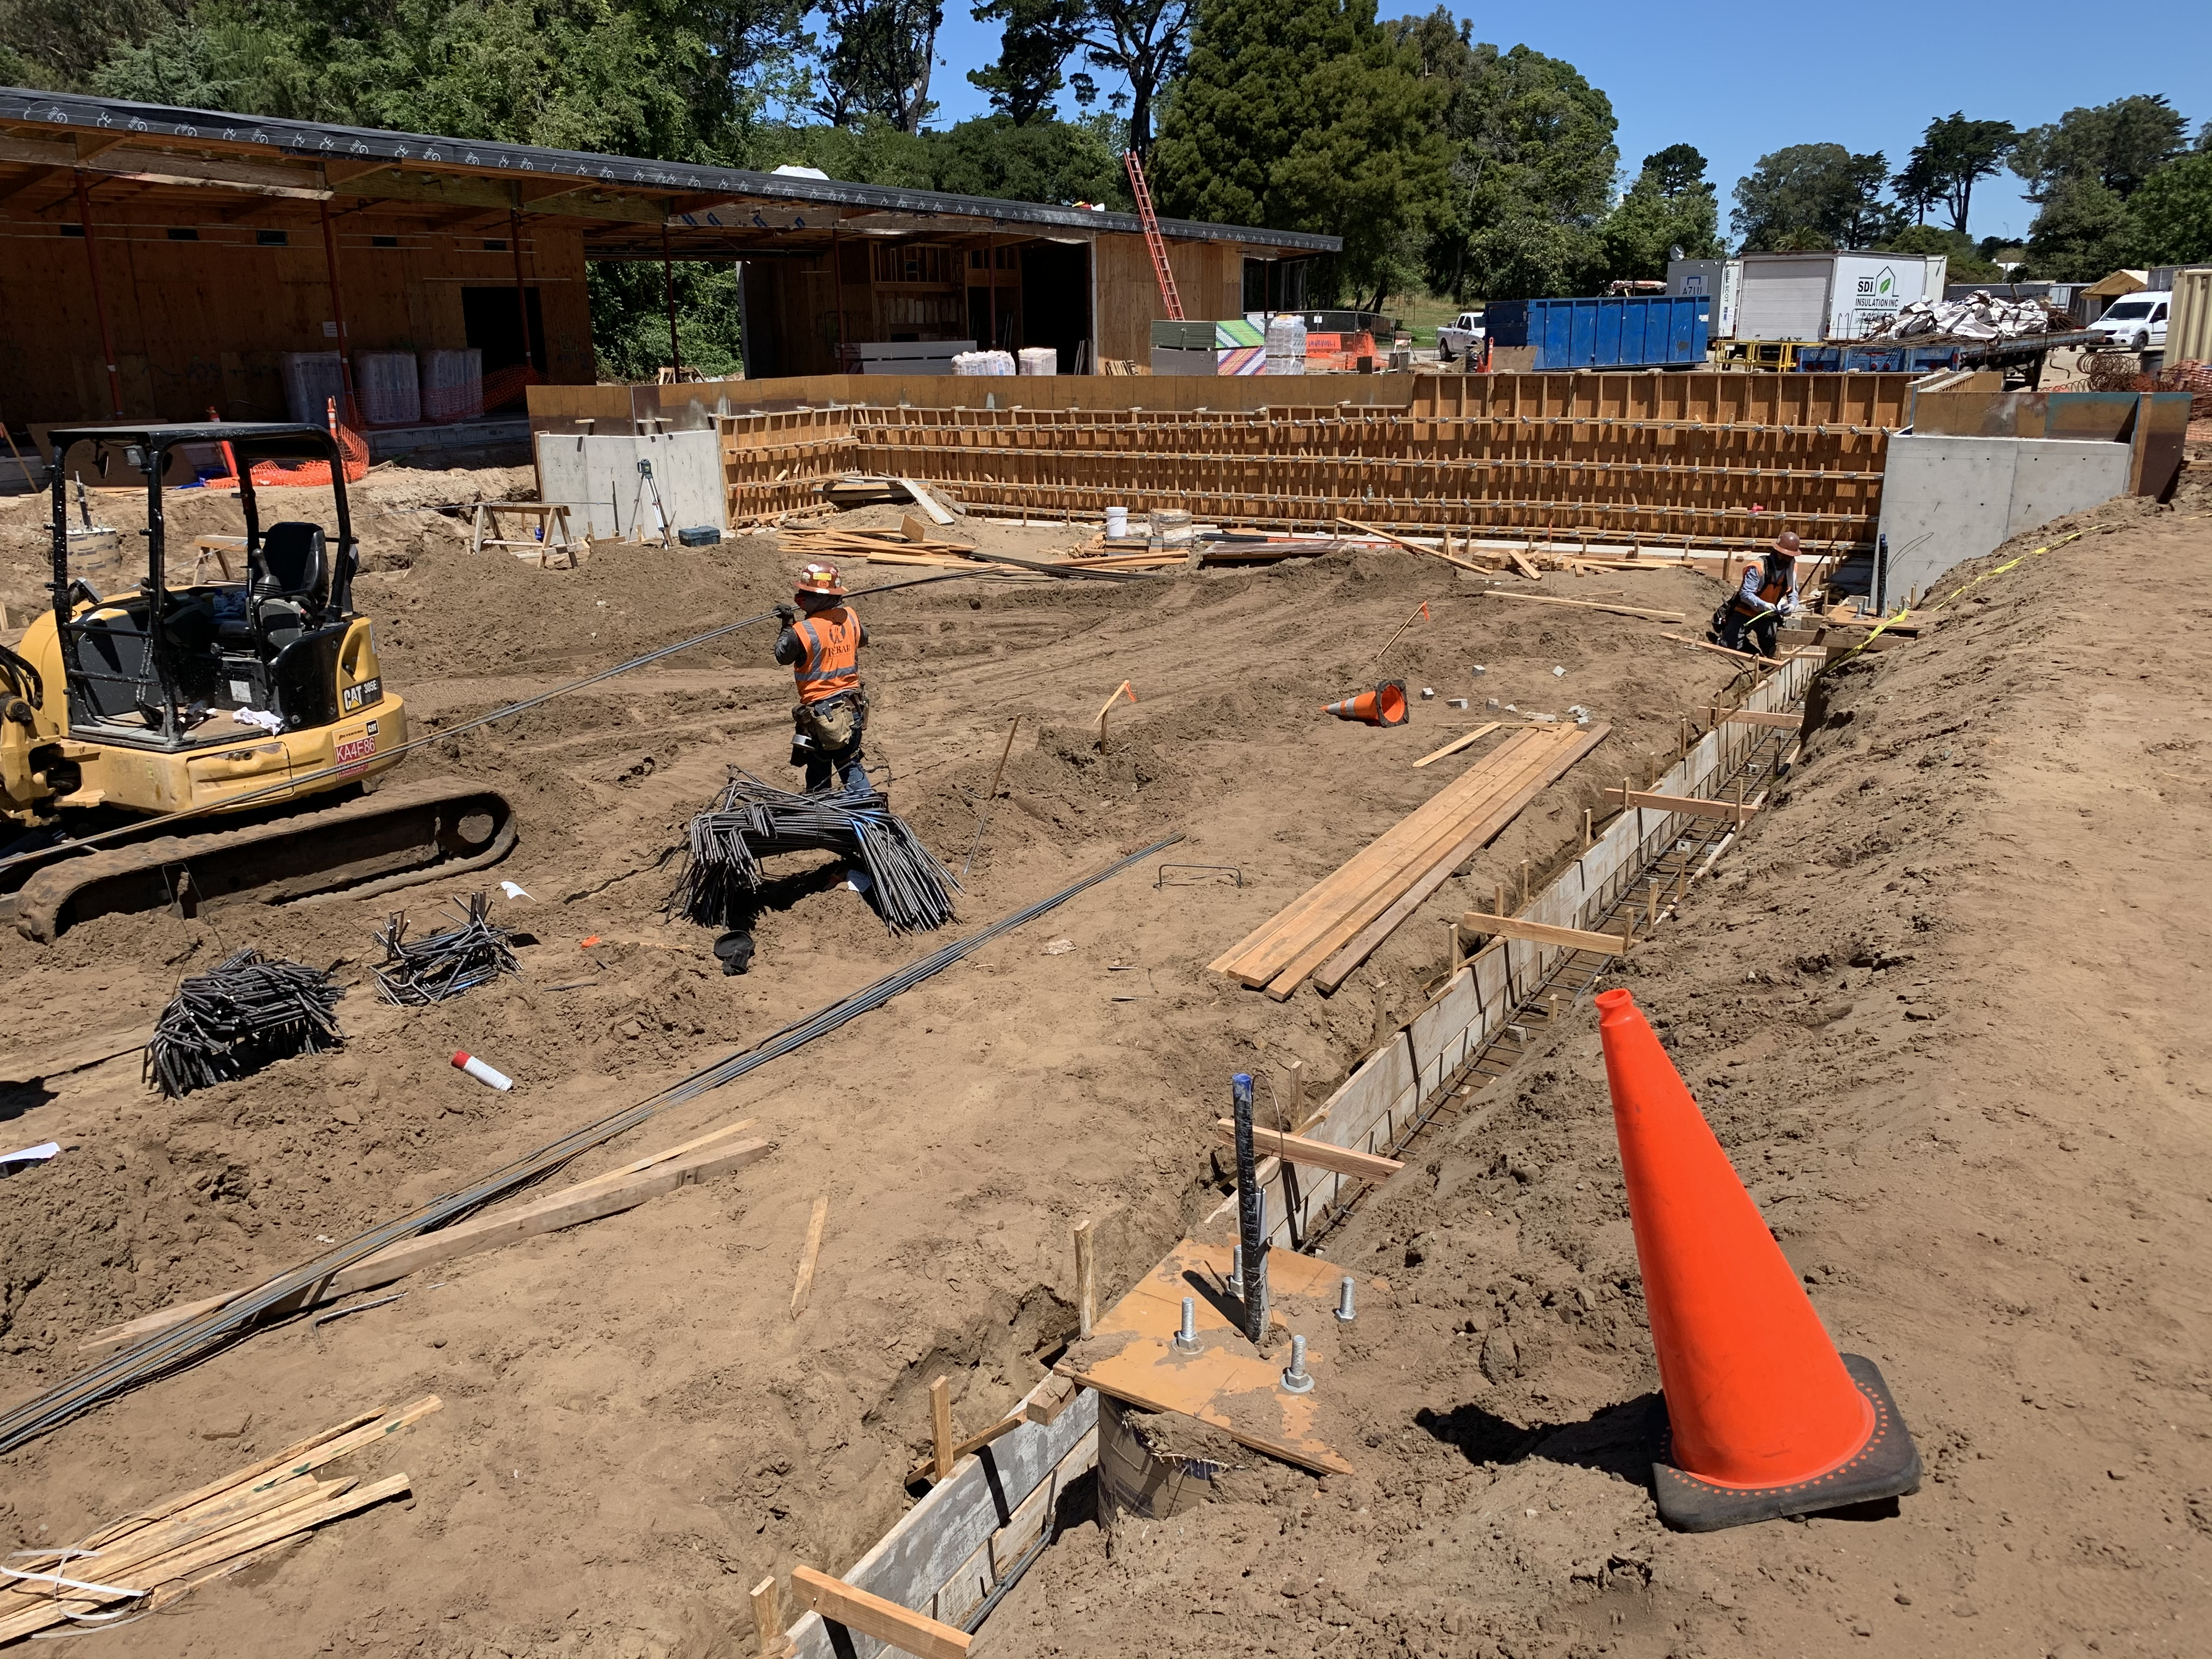 Golden Gate Park Tennis Center Construction June 2020 6